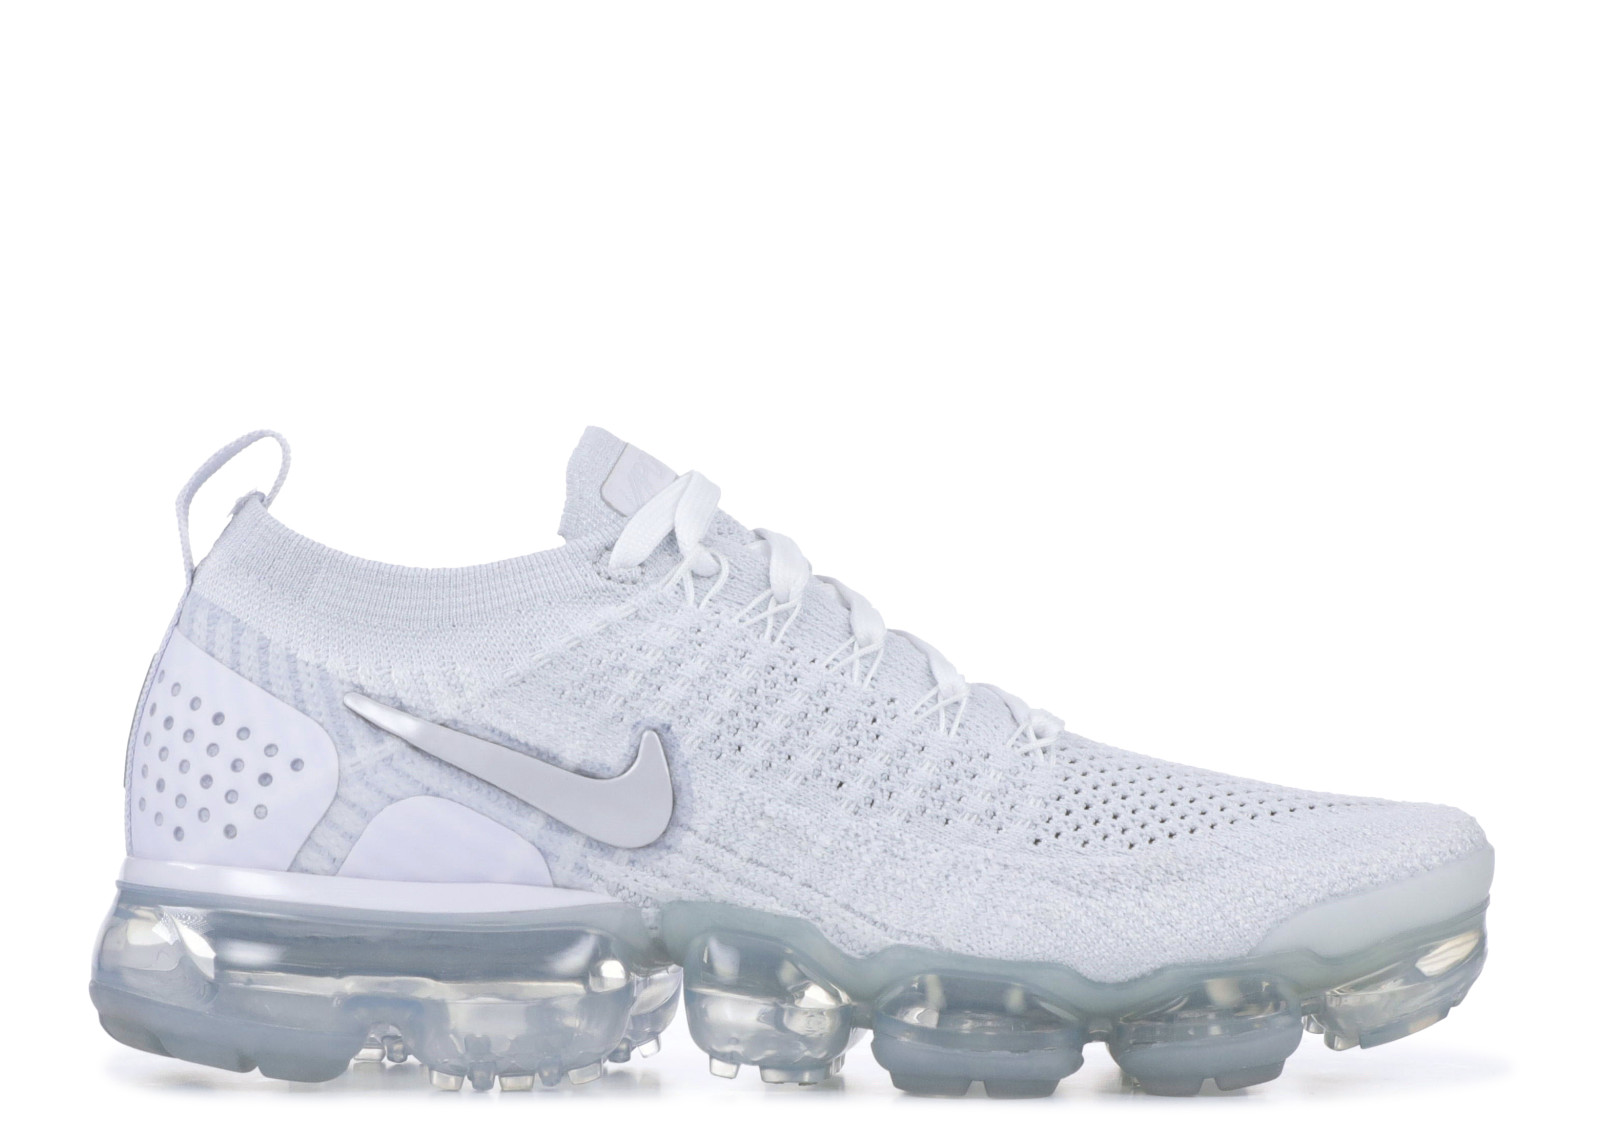 26edf2c485 Air VaporMax Flyknit 2 White Vast Grey (W) - 0